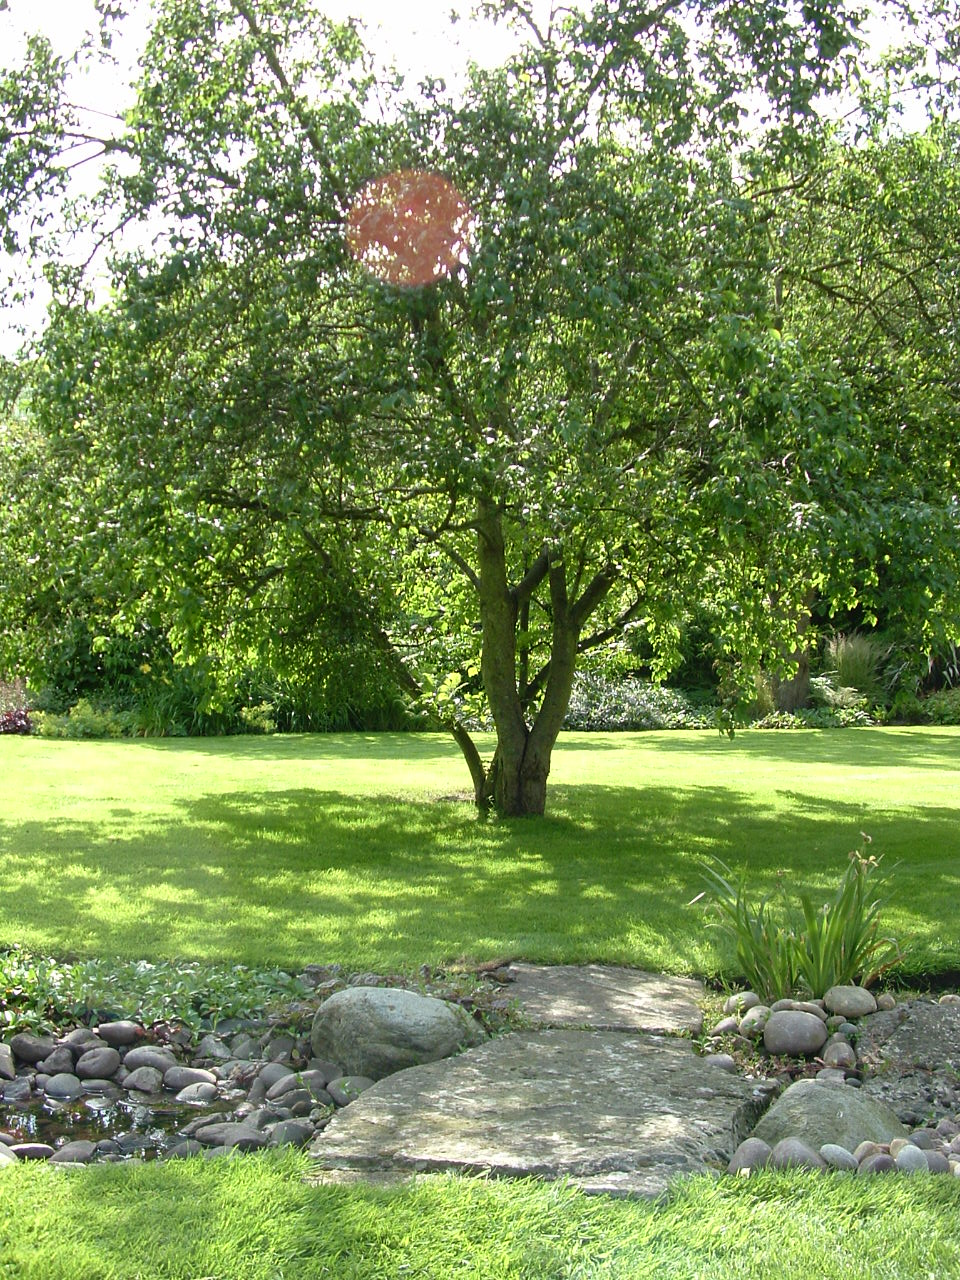 An old fruit tree in an open lawn with field stone 'dry stream bed' in front, a visual link between the stone terrace and the ponds.